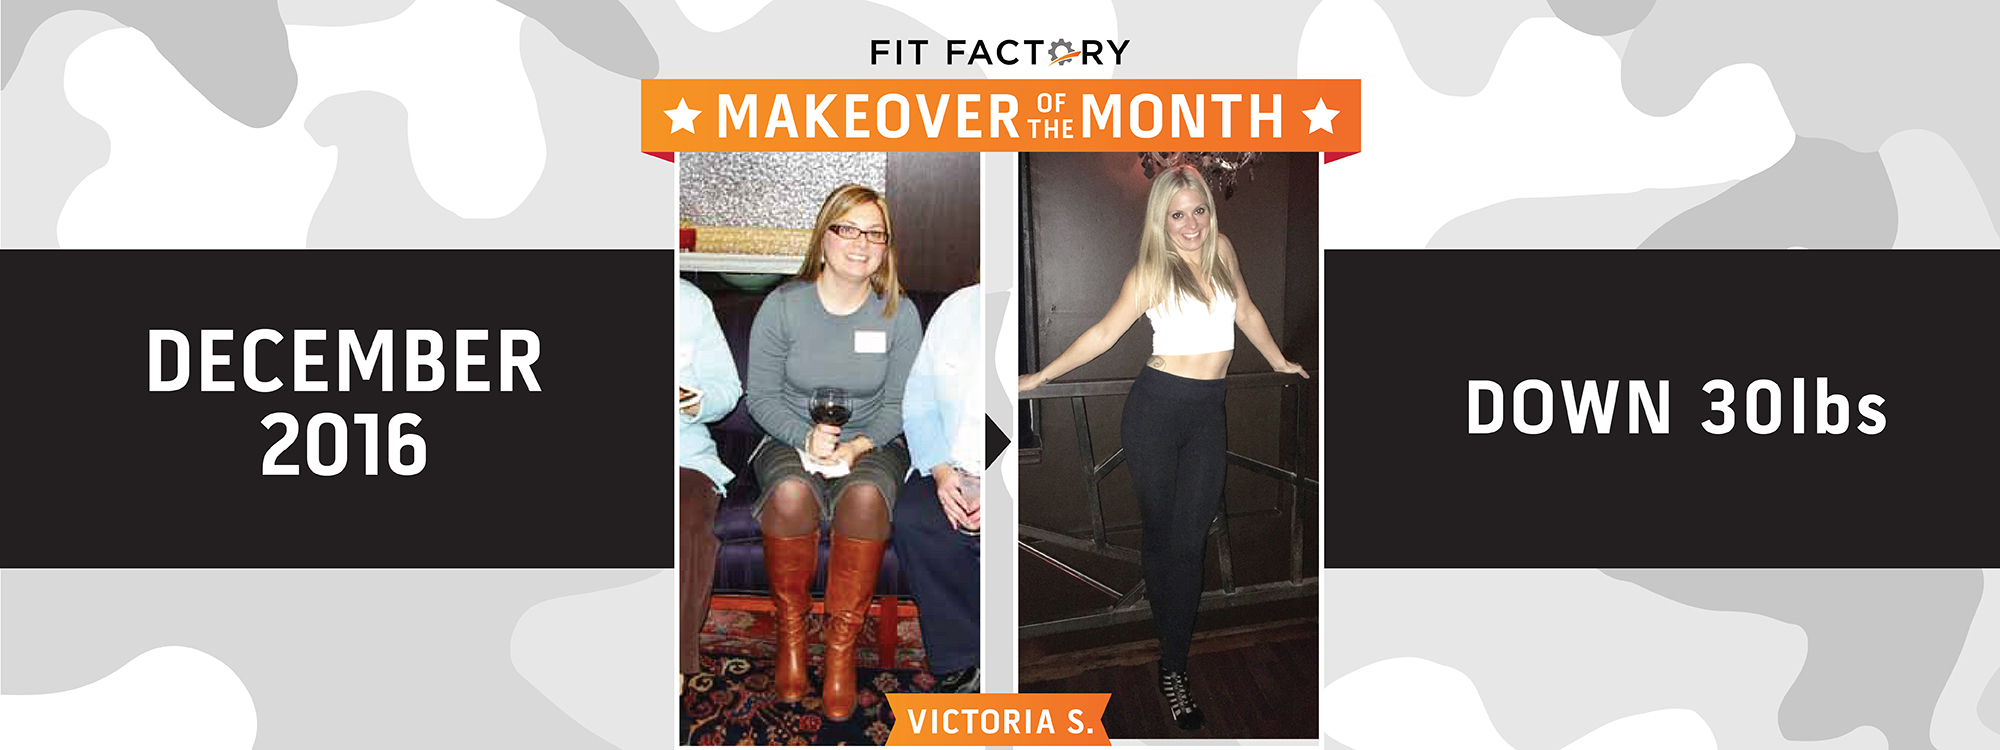 Makeover of the Month_WEB - Victoria S - dec 2016